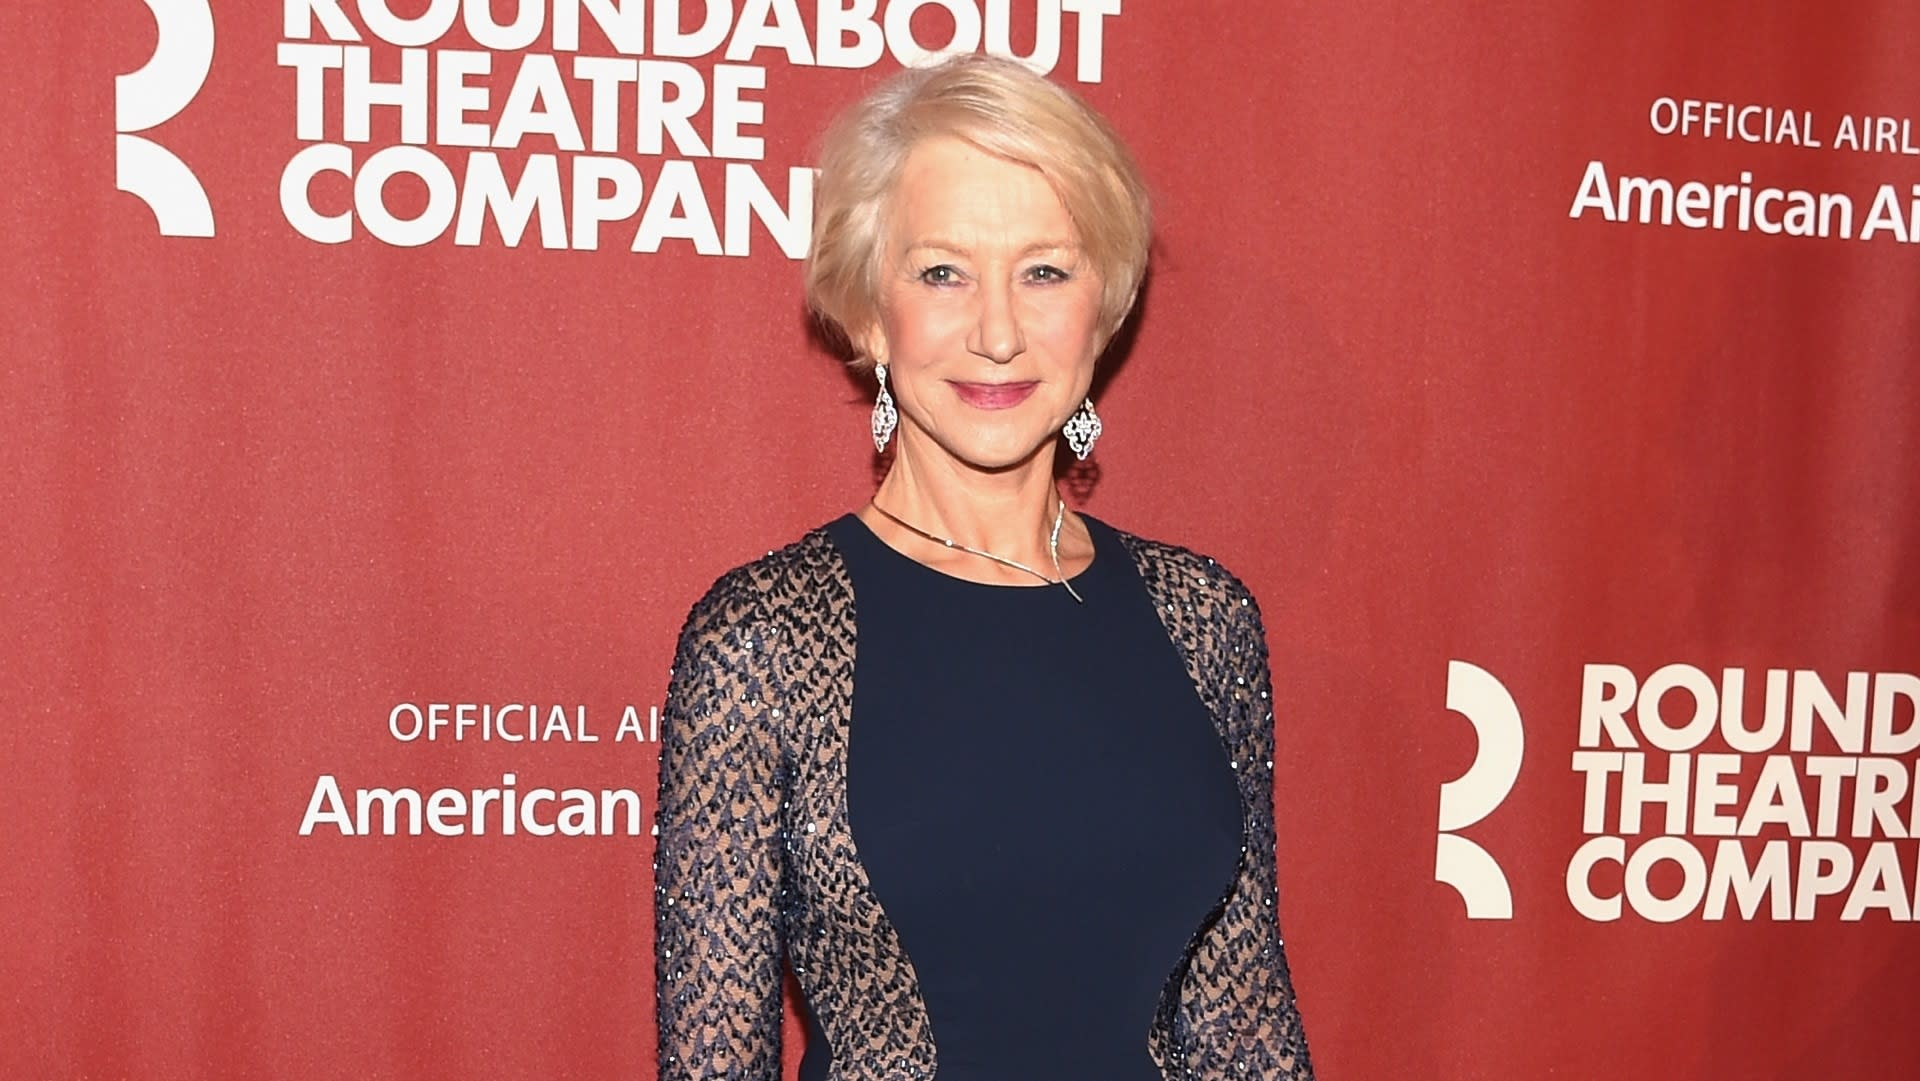 Helen Mirren Can't Sing, Gets an Award Anyway at Roundabout Theater Company Gala